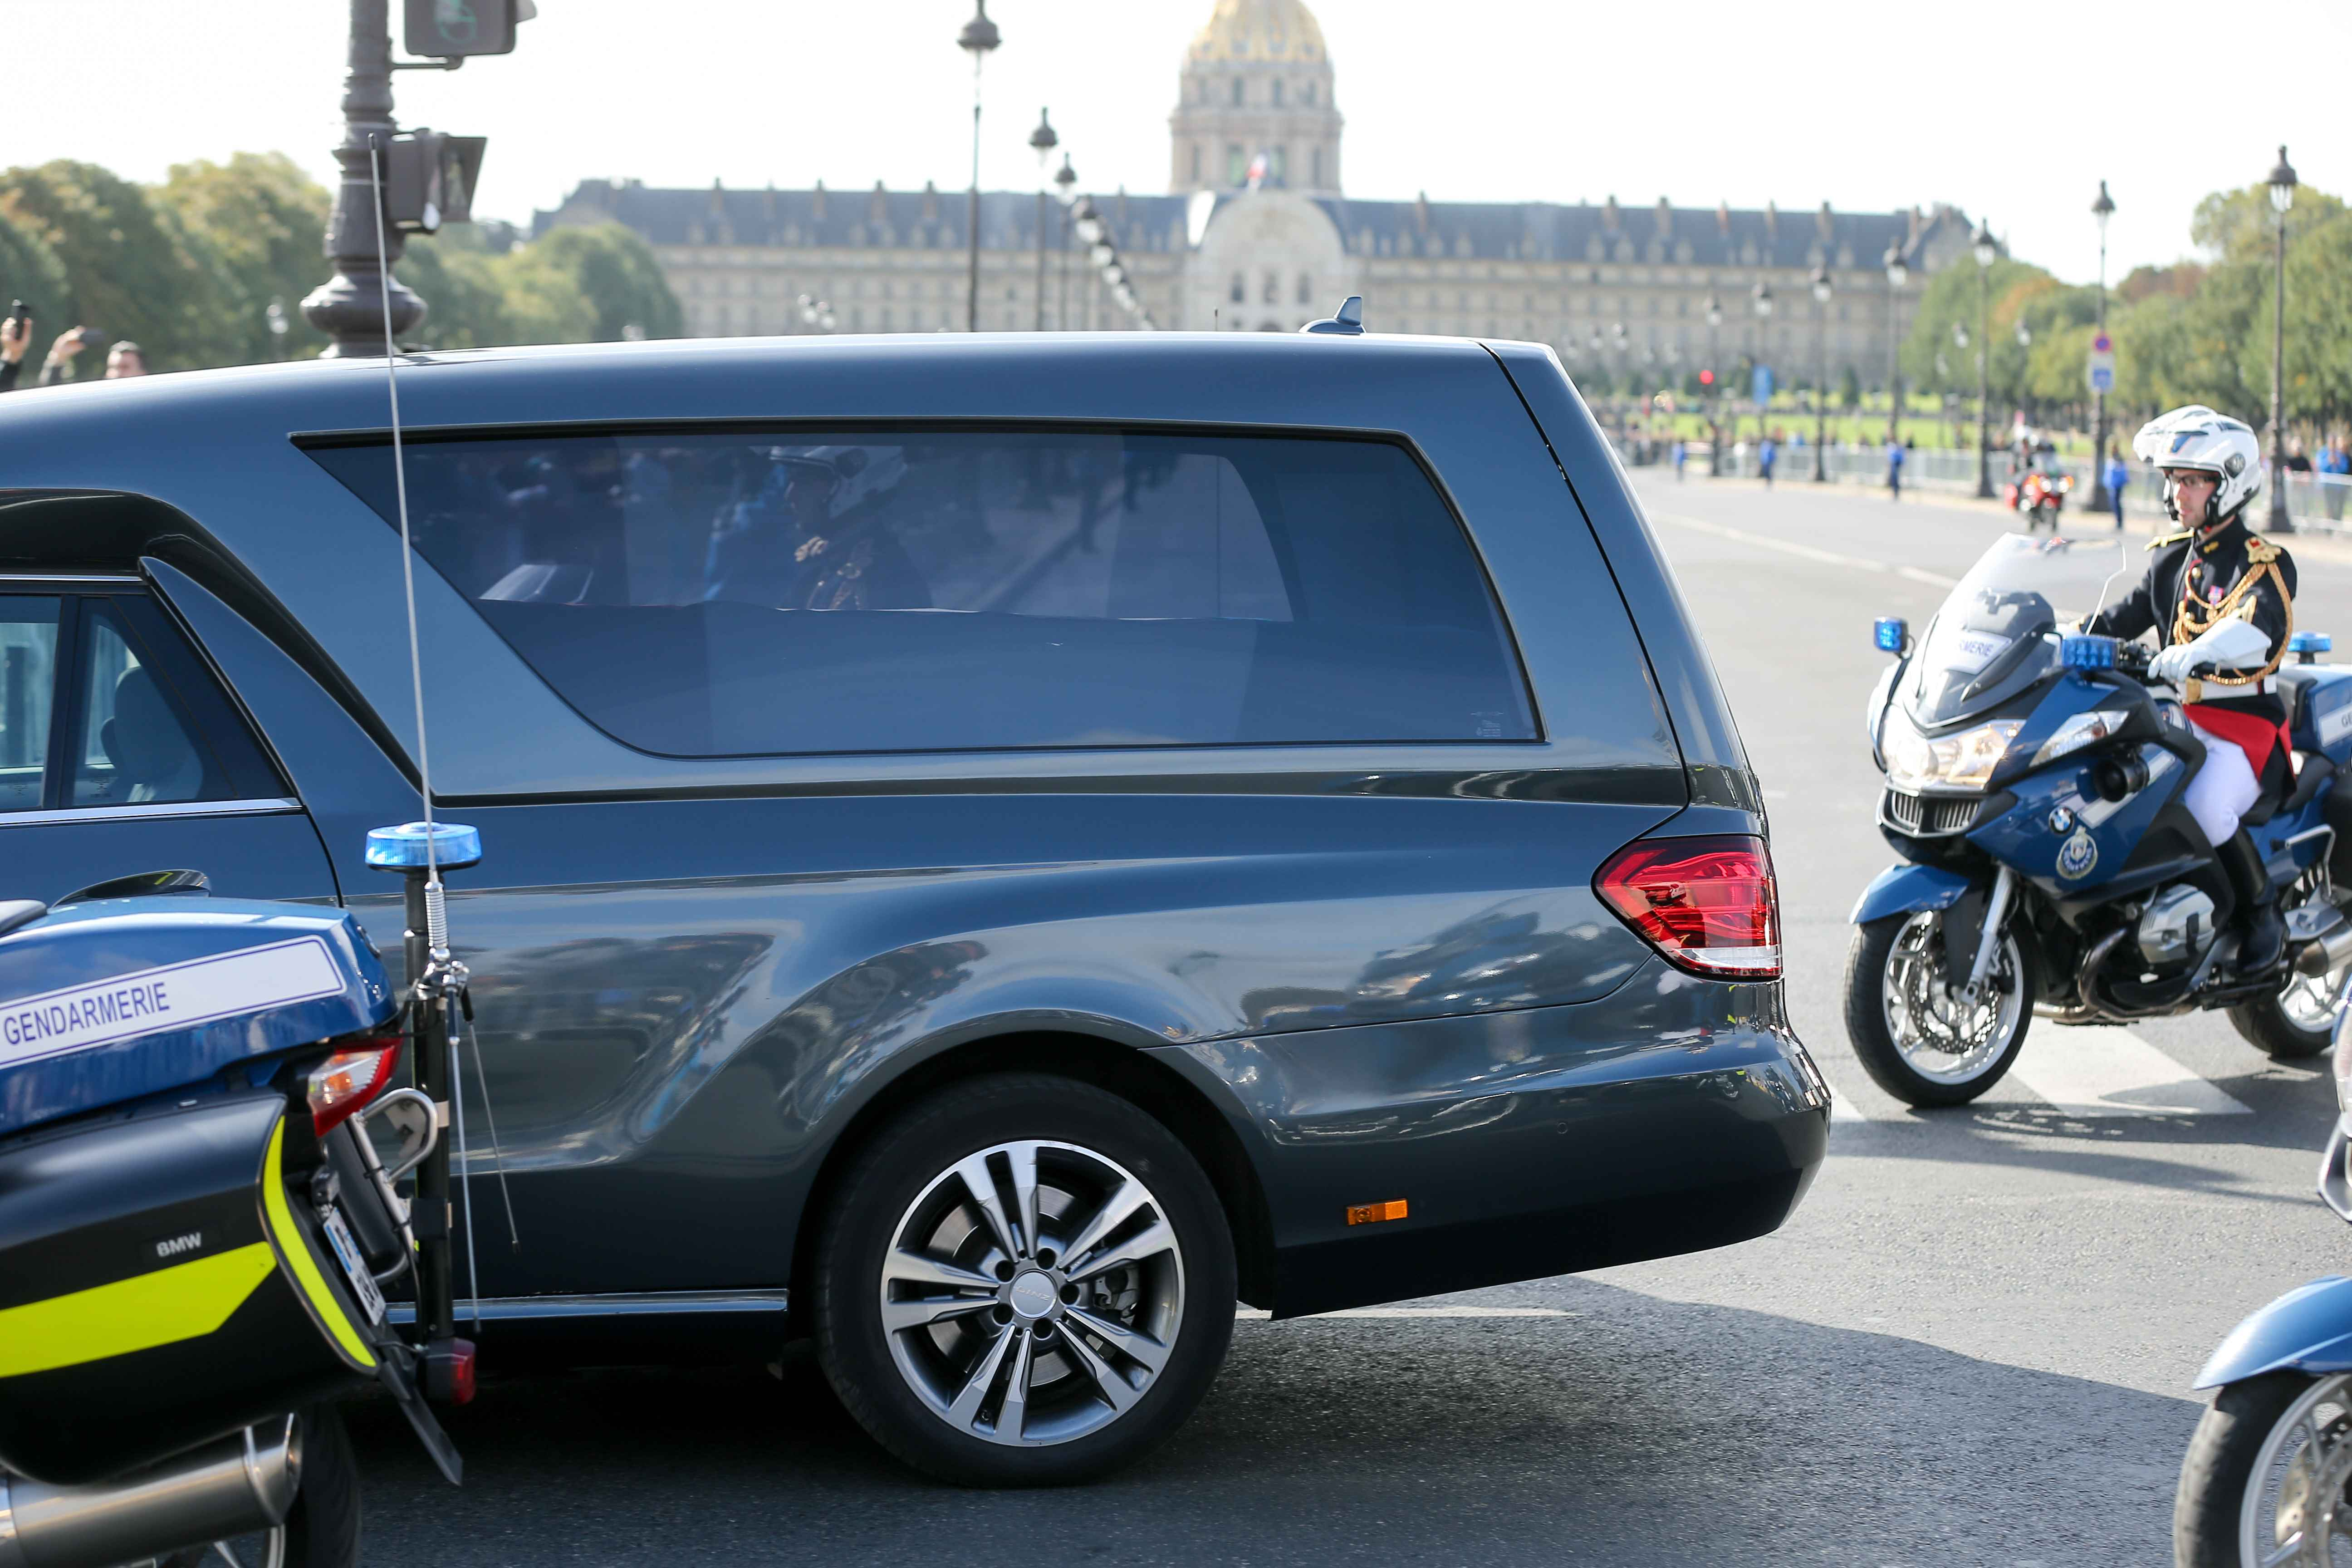 The hearse transporting the coffin of former French President Jacques Chirac, covered with the French national flag,  leaves the Invalides (Hotel des Invalides) for the Saint-Sulpice church in Paris for the funeral service on September 30, 2019. Former Fre